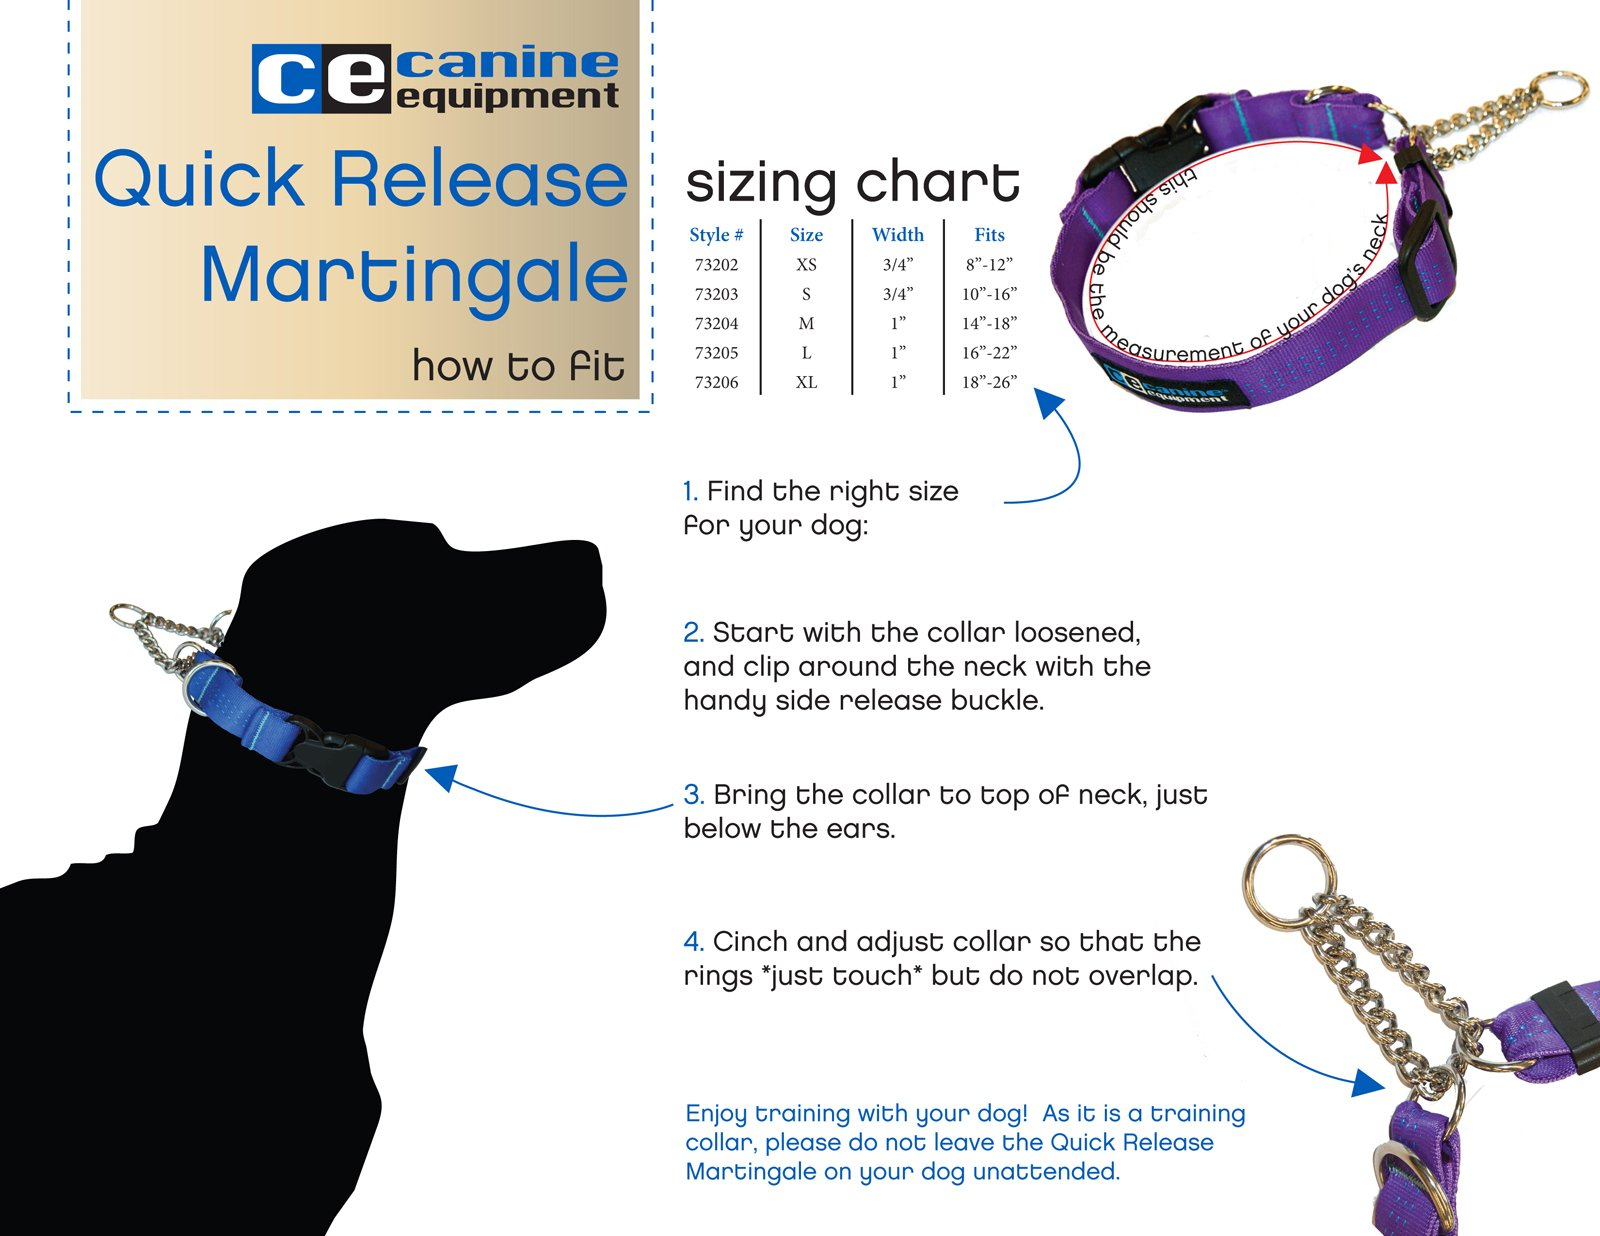 RC Pet Products Technika 3/4-Inch Quick Release Martingale Dog Collar, Small, Black